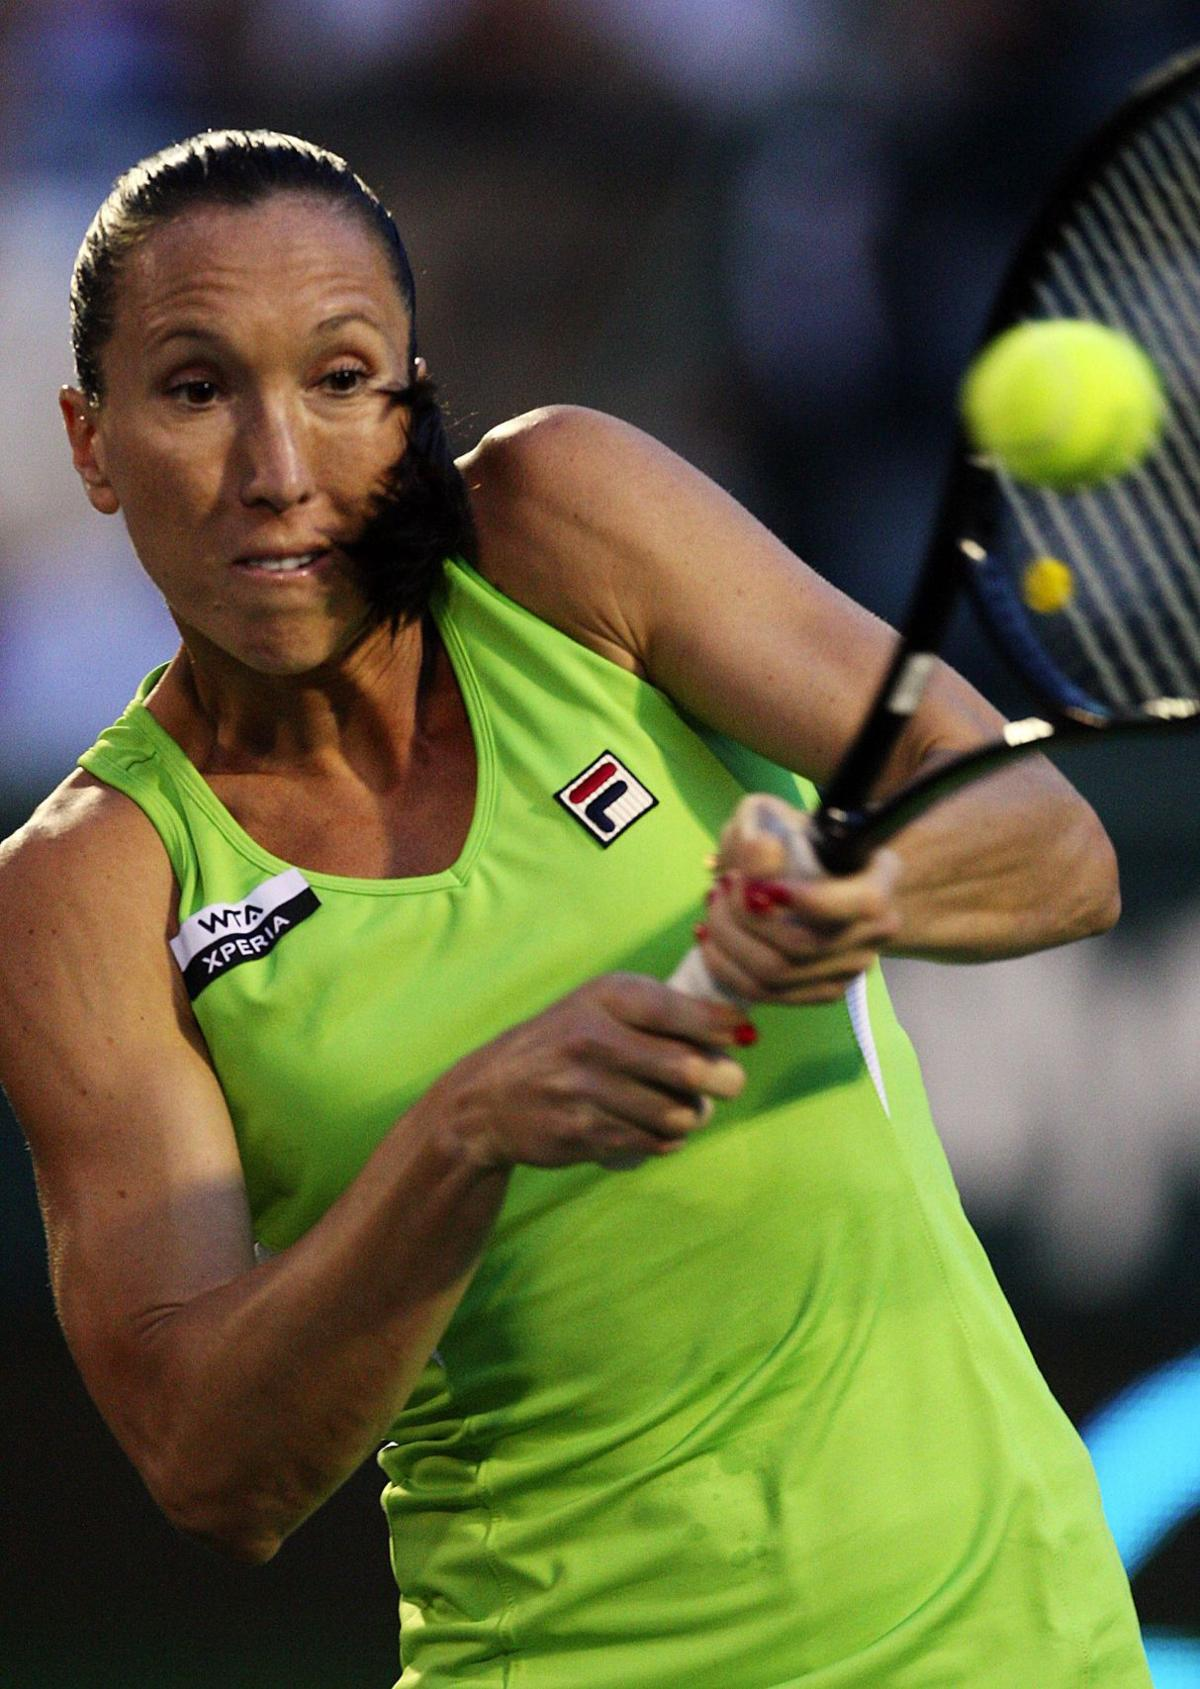 Injury forces Jankovic to withdraw